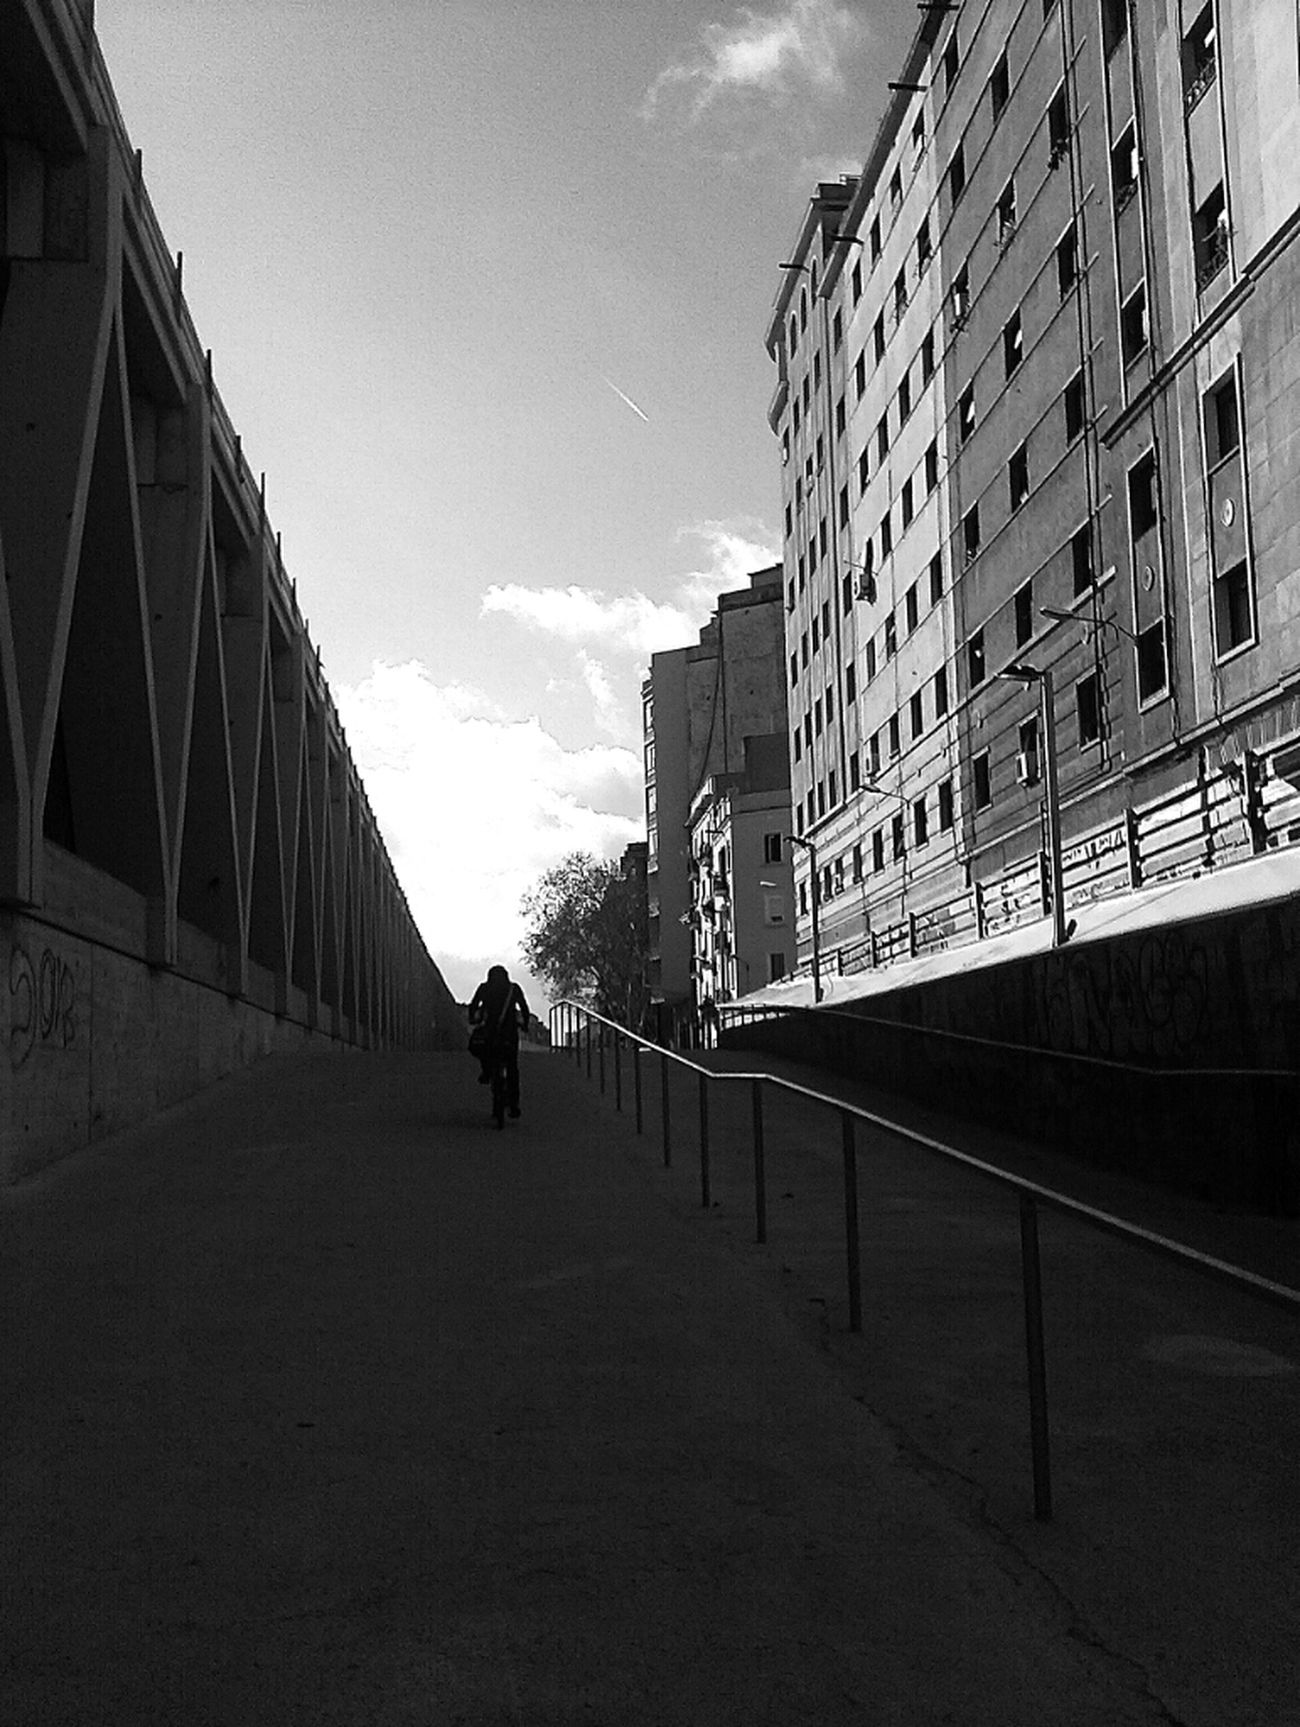 Street Streetphotography Blackandwhite Street Photography Street Life Barcelona Streetphoto_bw Bw_collection